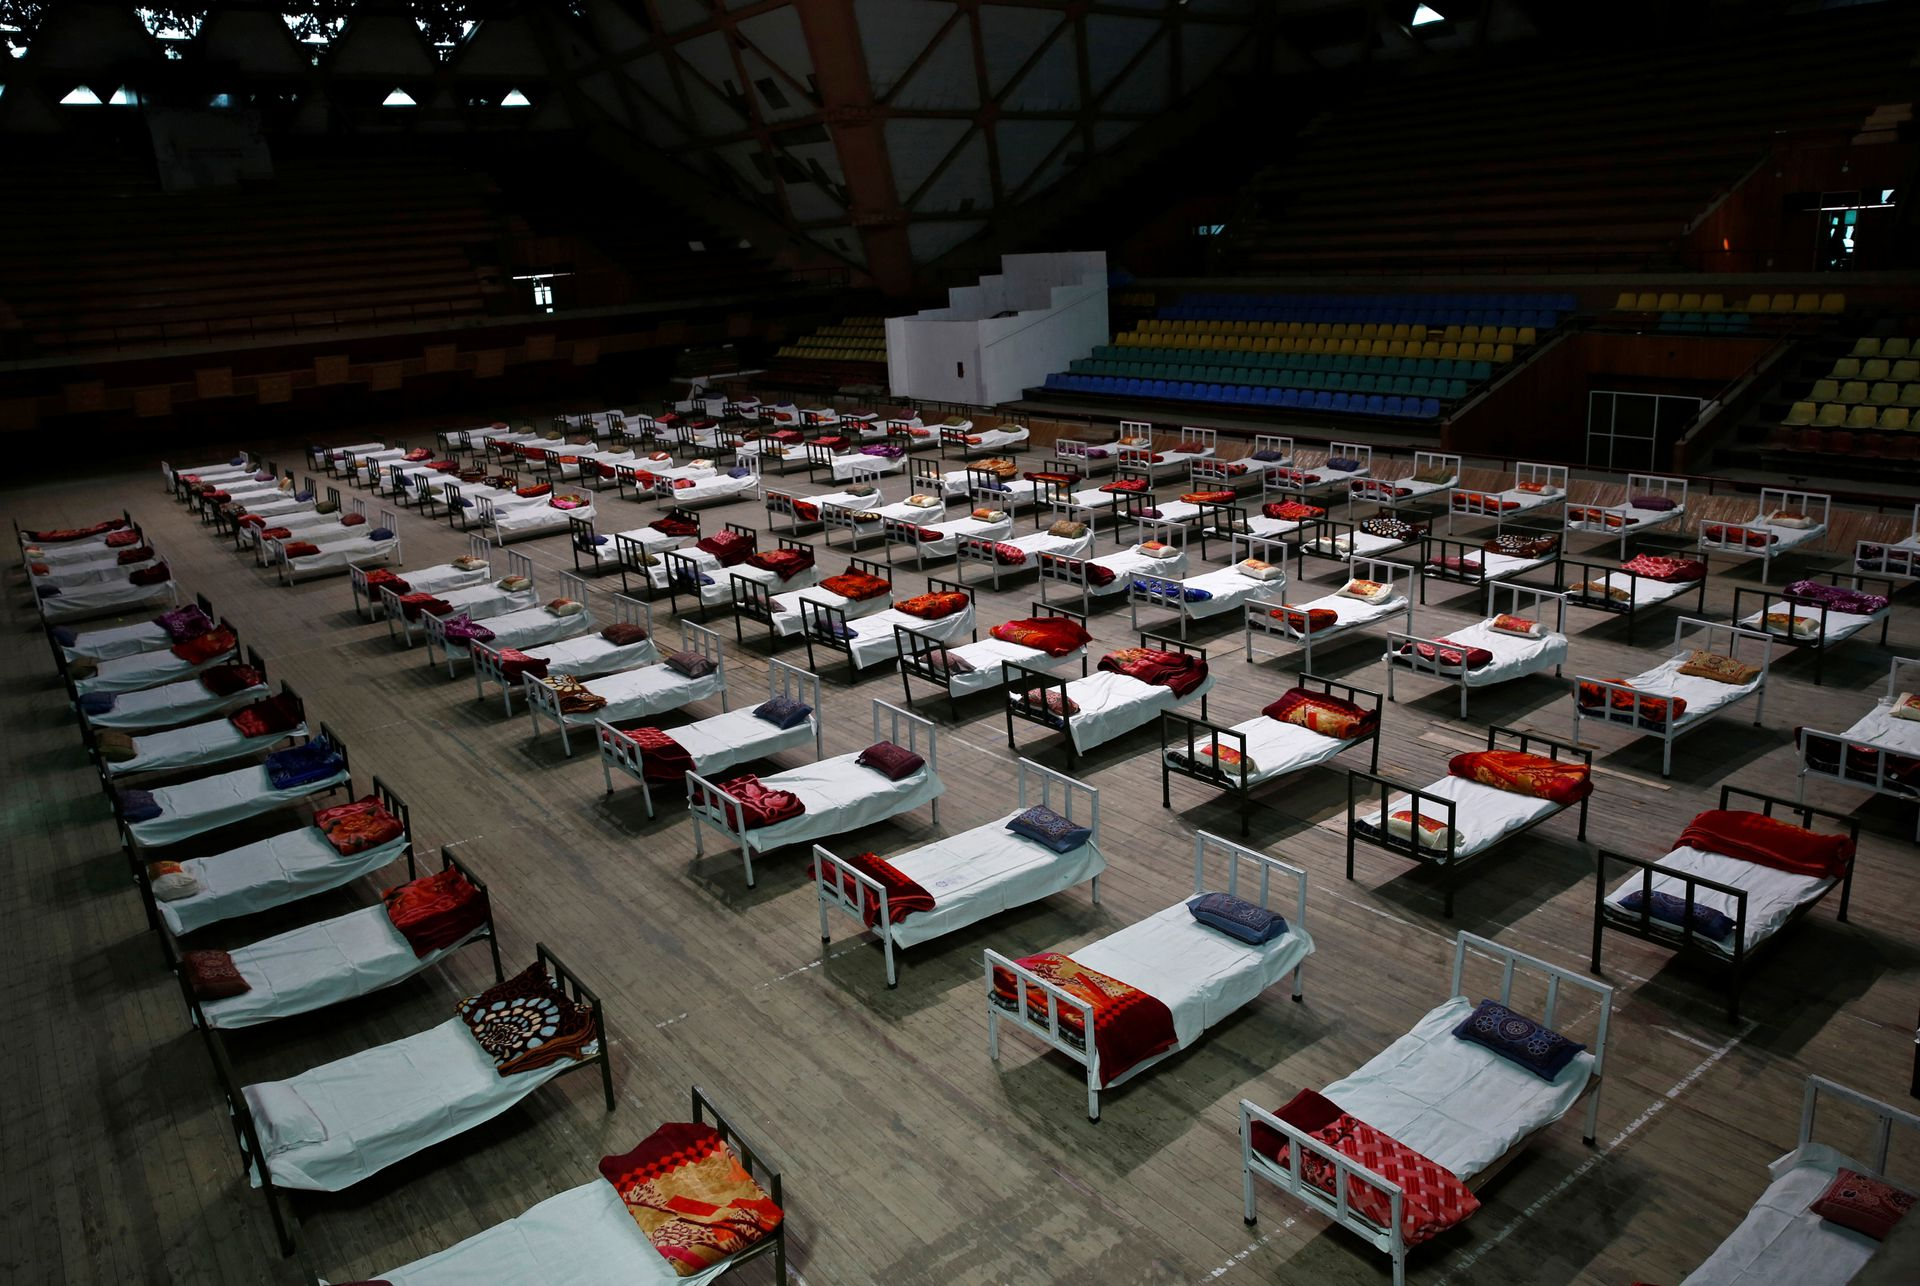 Beds are seen in an indoor stadium converted into a COVID-19 care facility amidst the spread of the coronavirus disease (COVID-19) in Srinagar April 29, 2021. Photo: Reuters